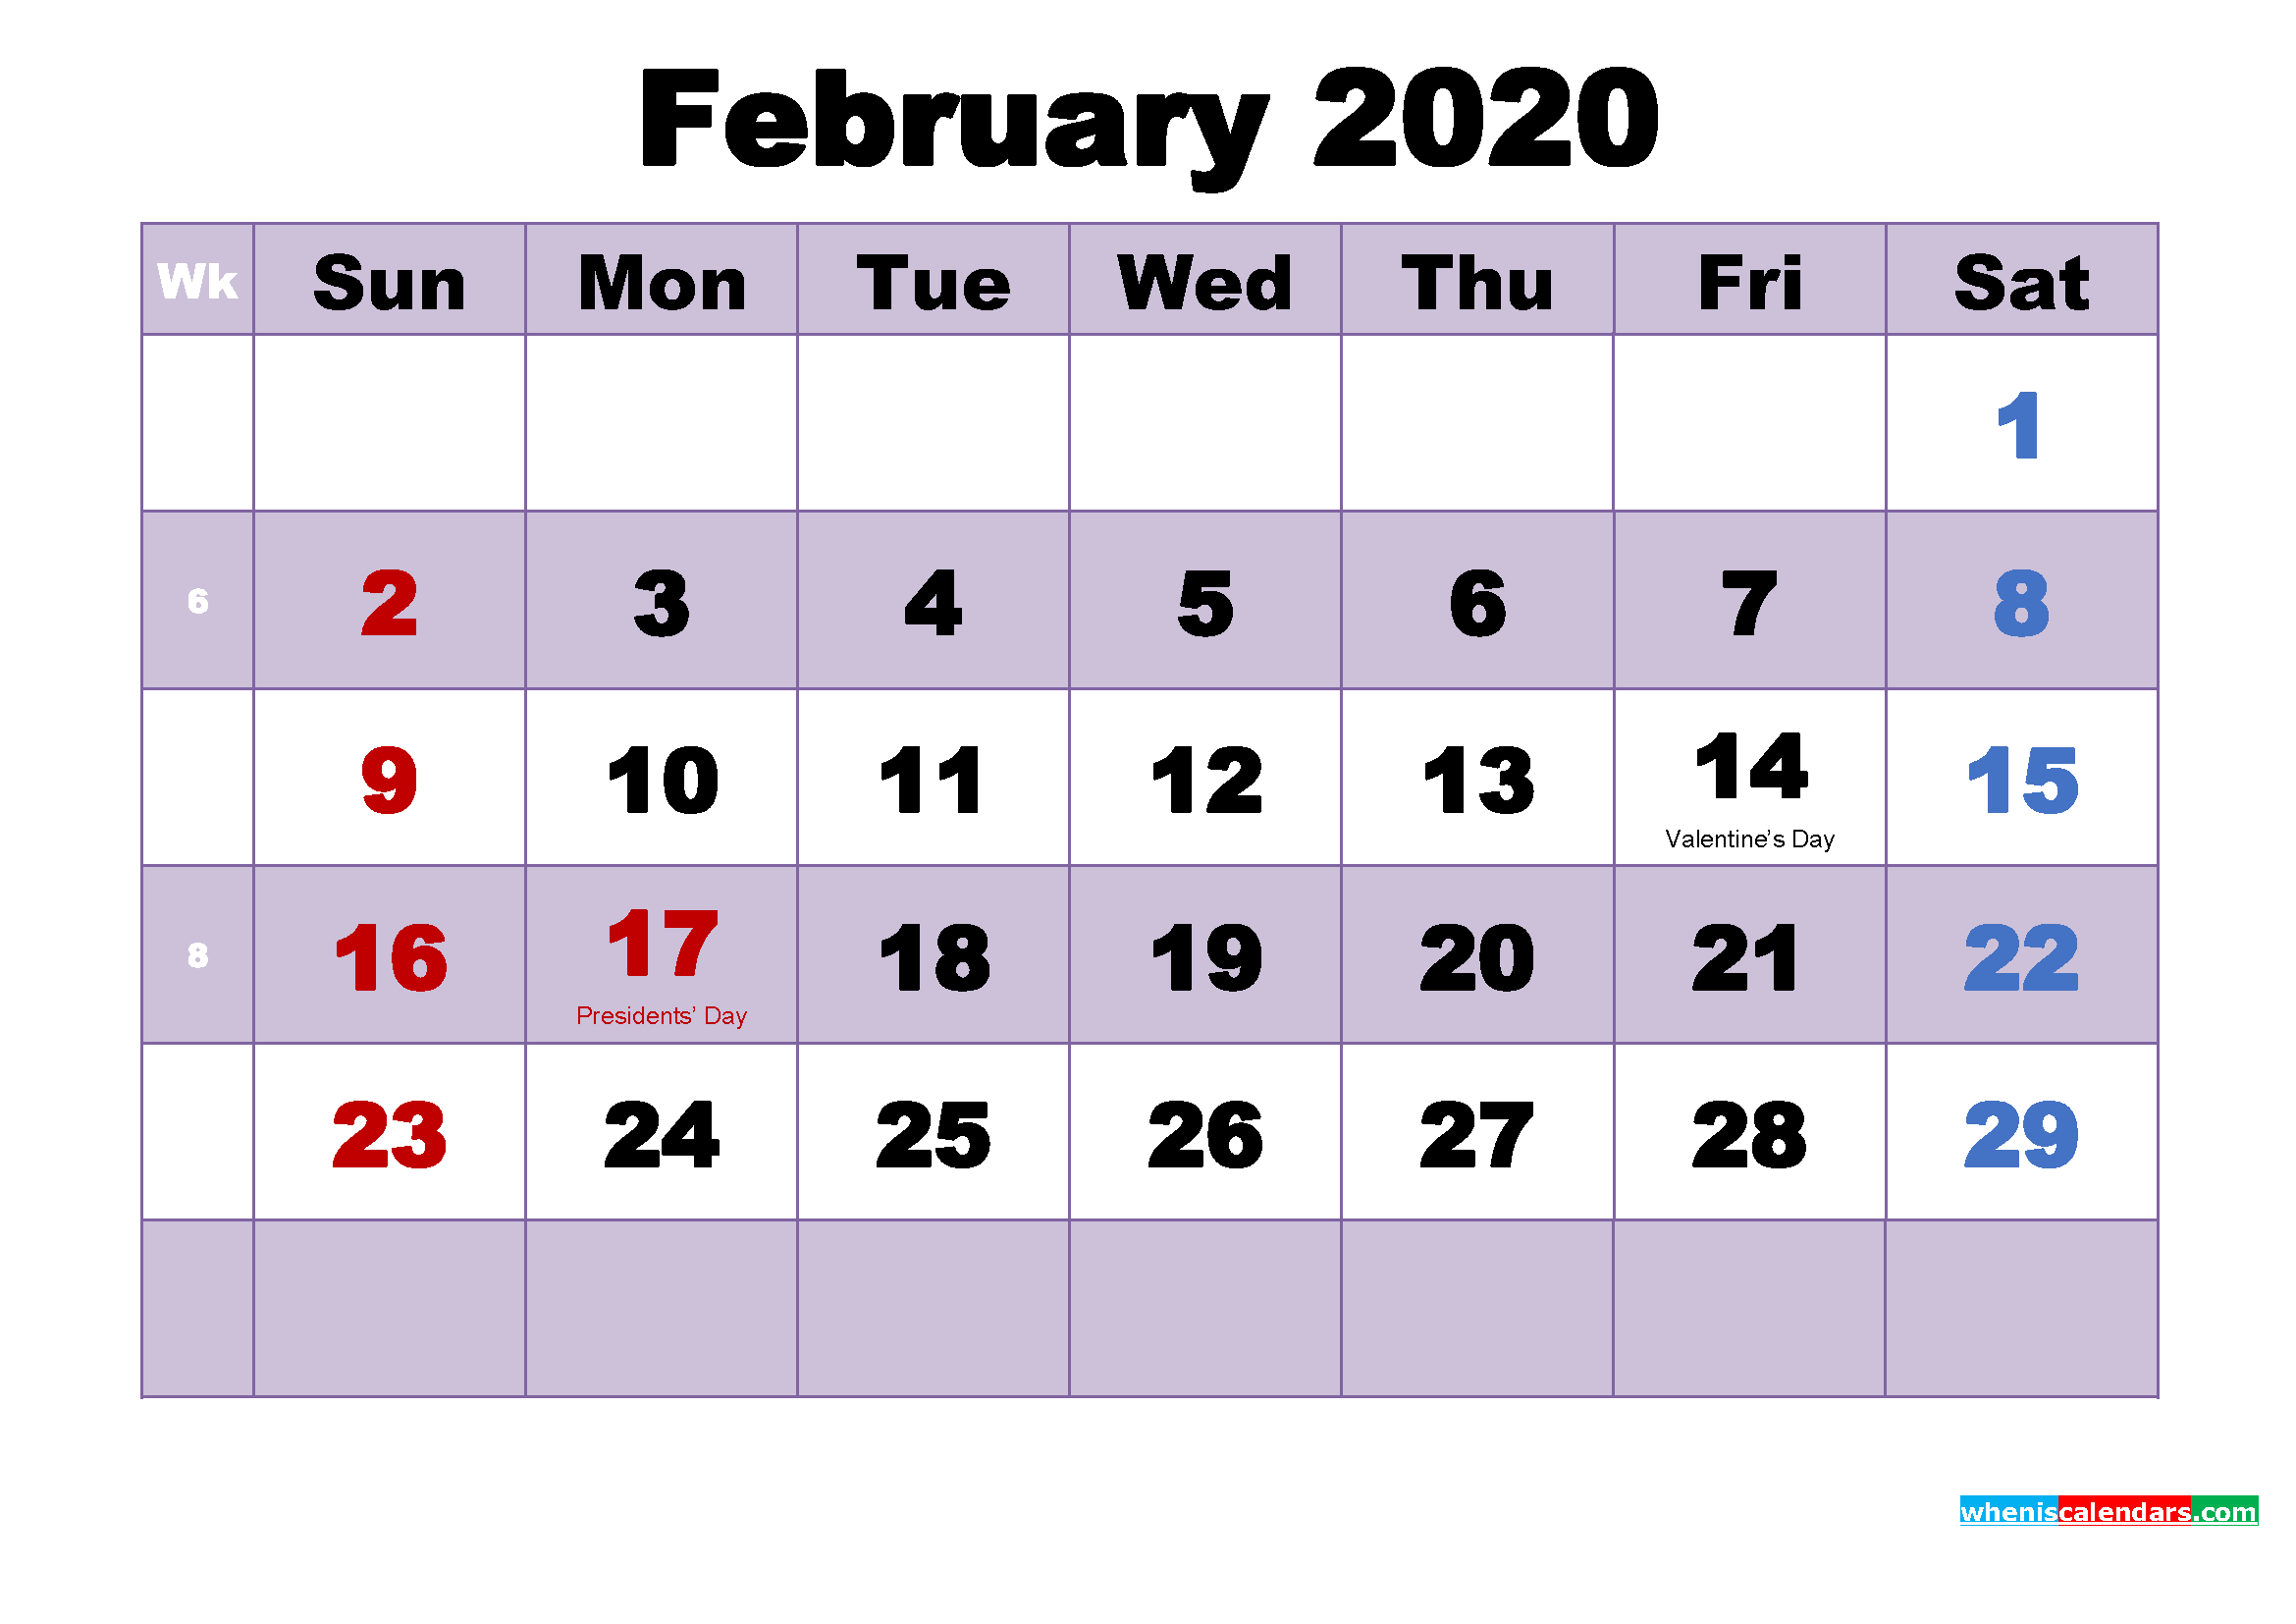 February 2020 Calendar Wallpaper Free Download